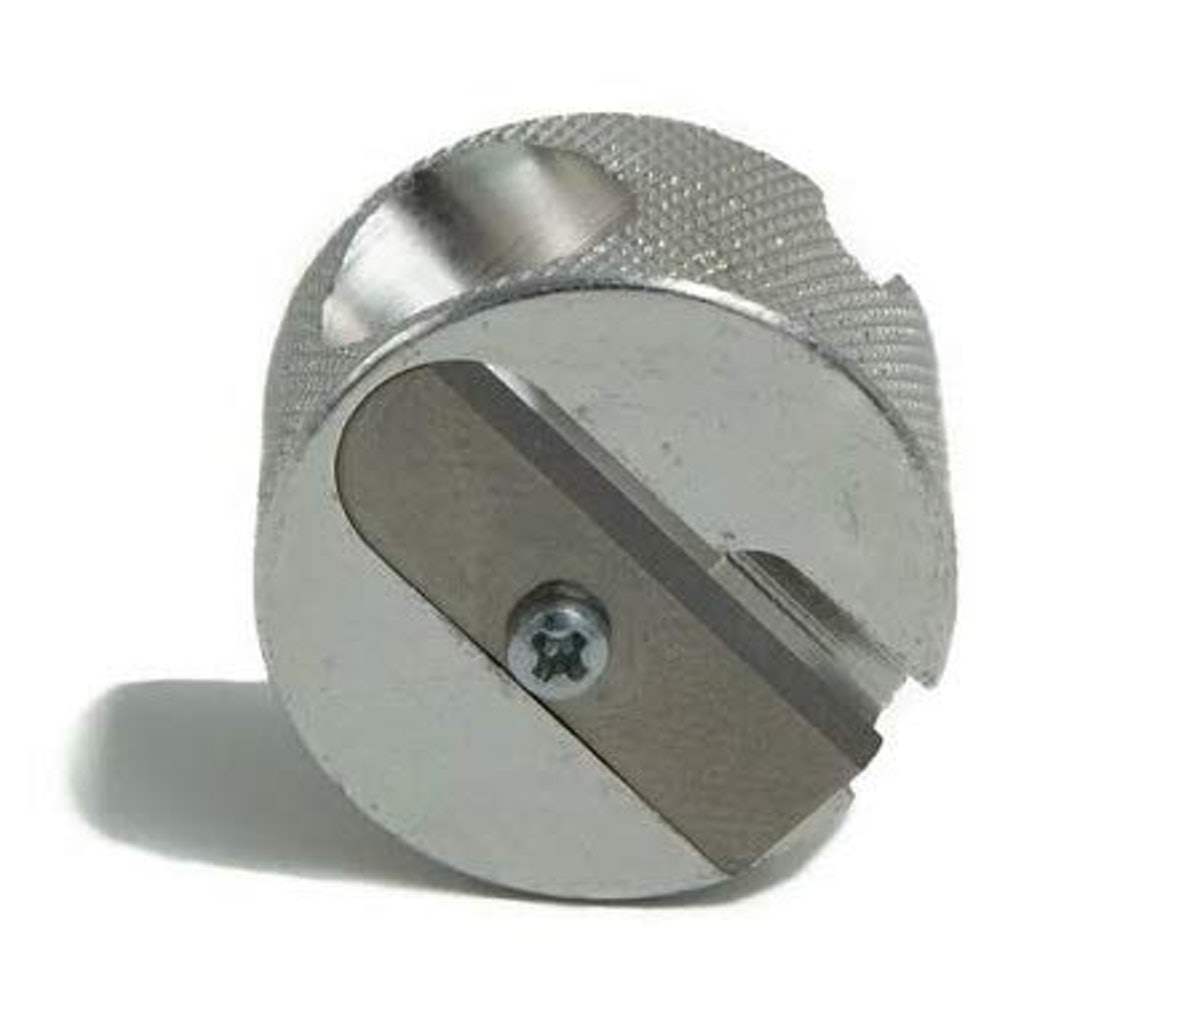 Sun's Out Beauty Precision Cosmetic Pencil Sharpener